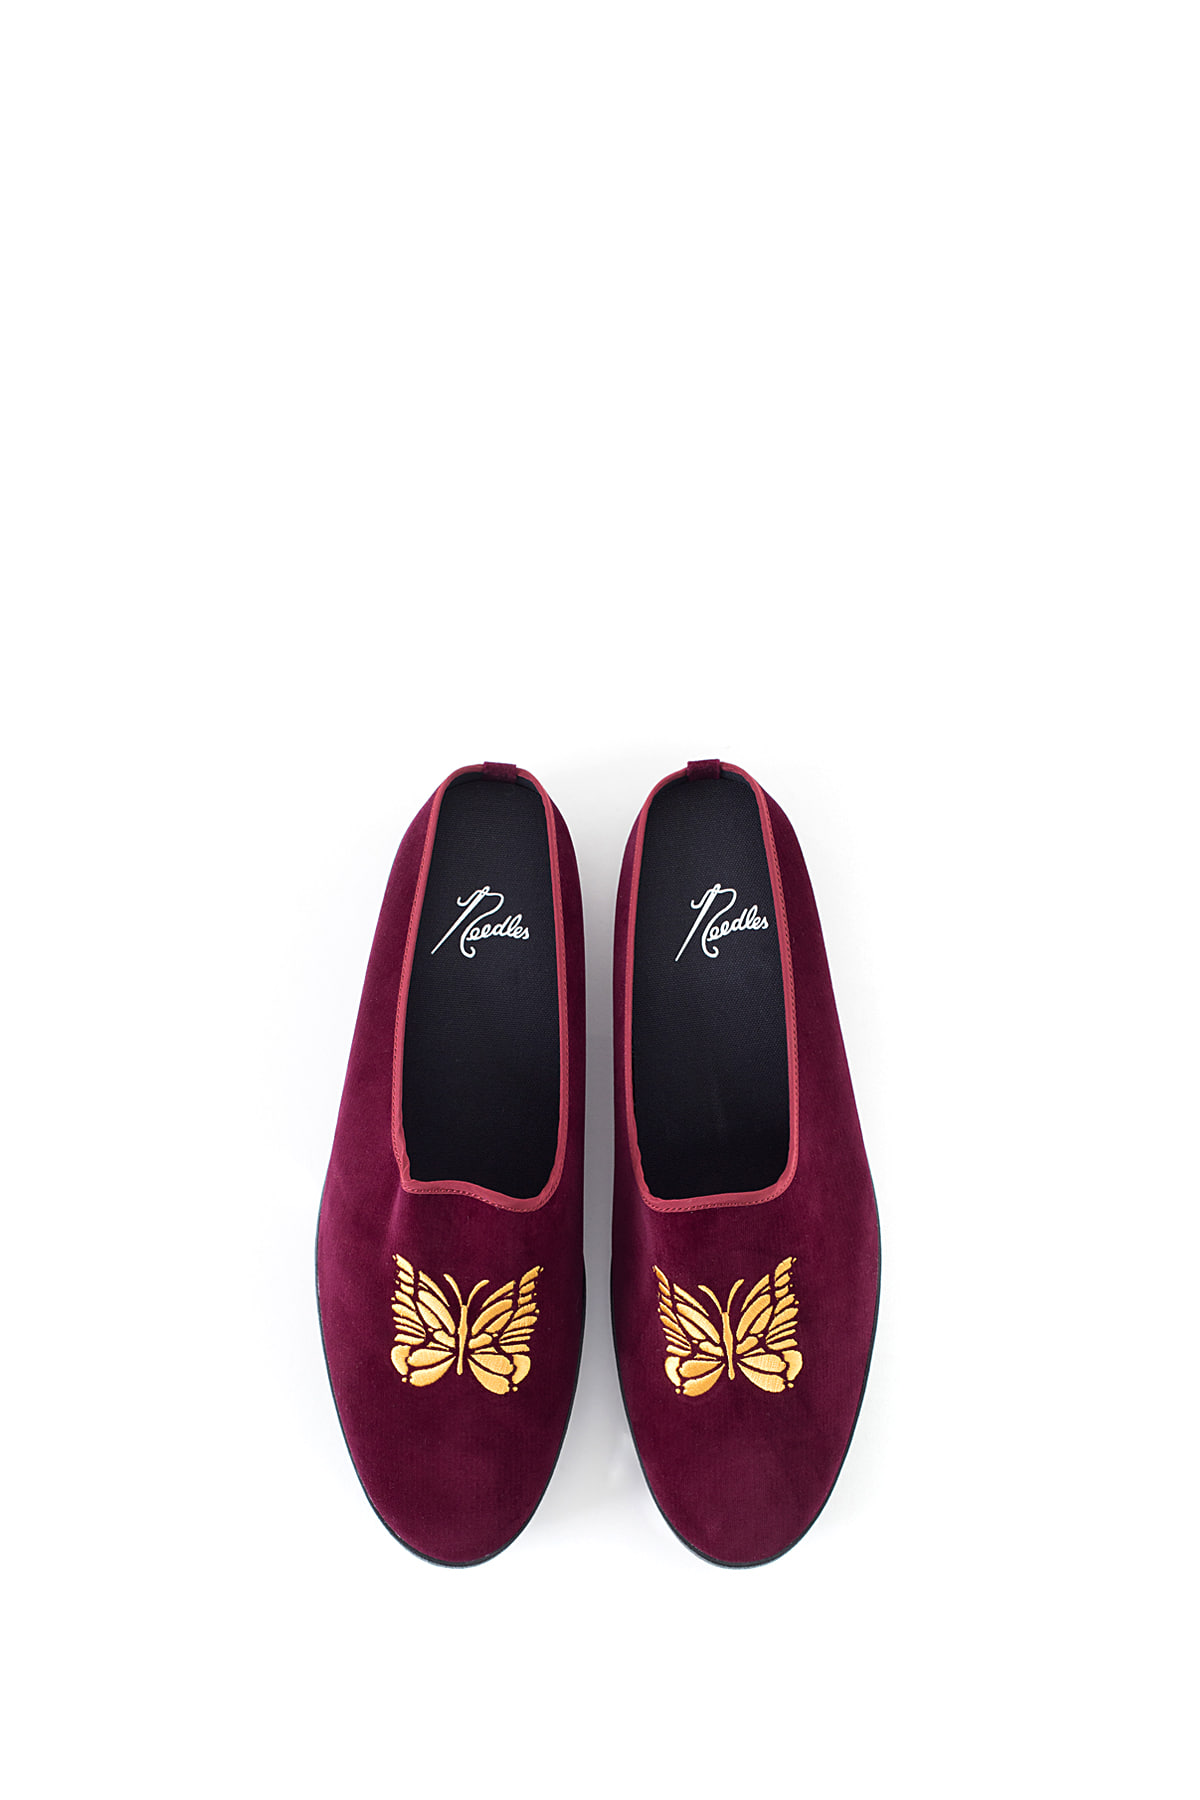 NEEDLES : Papillon Emb. Velveteen Mule (Bordeaux)